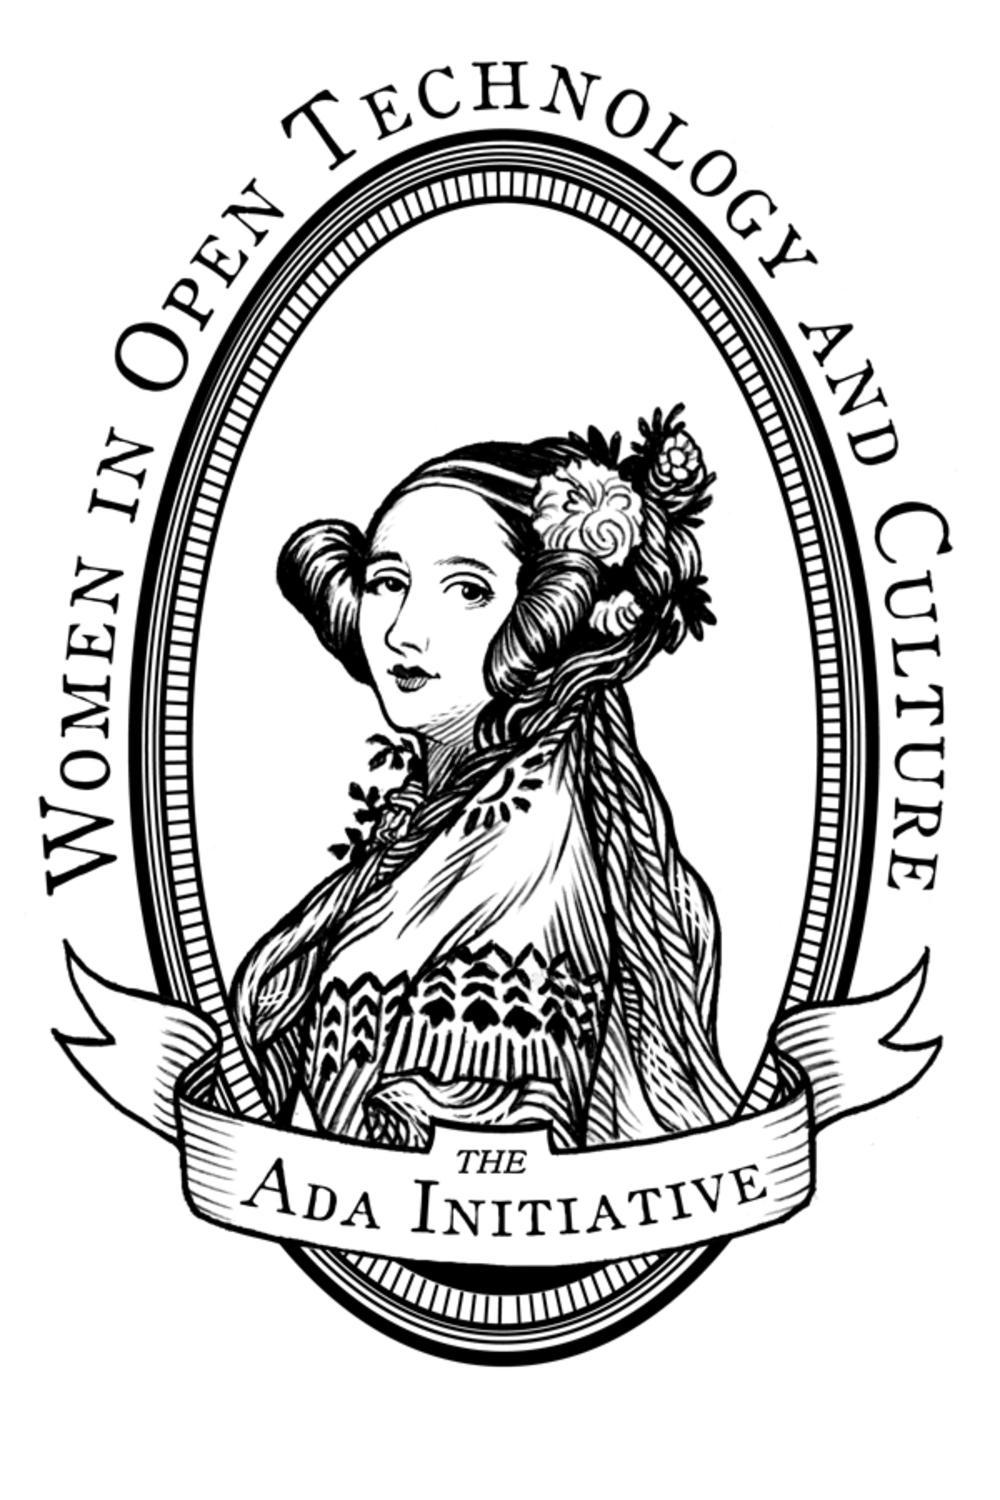 File:Ada Initiative logo (Ada Lovelace portrait, black and